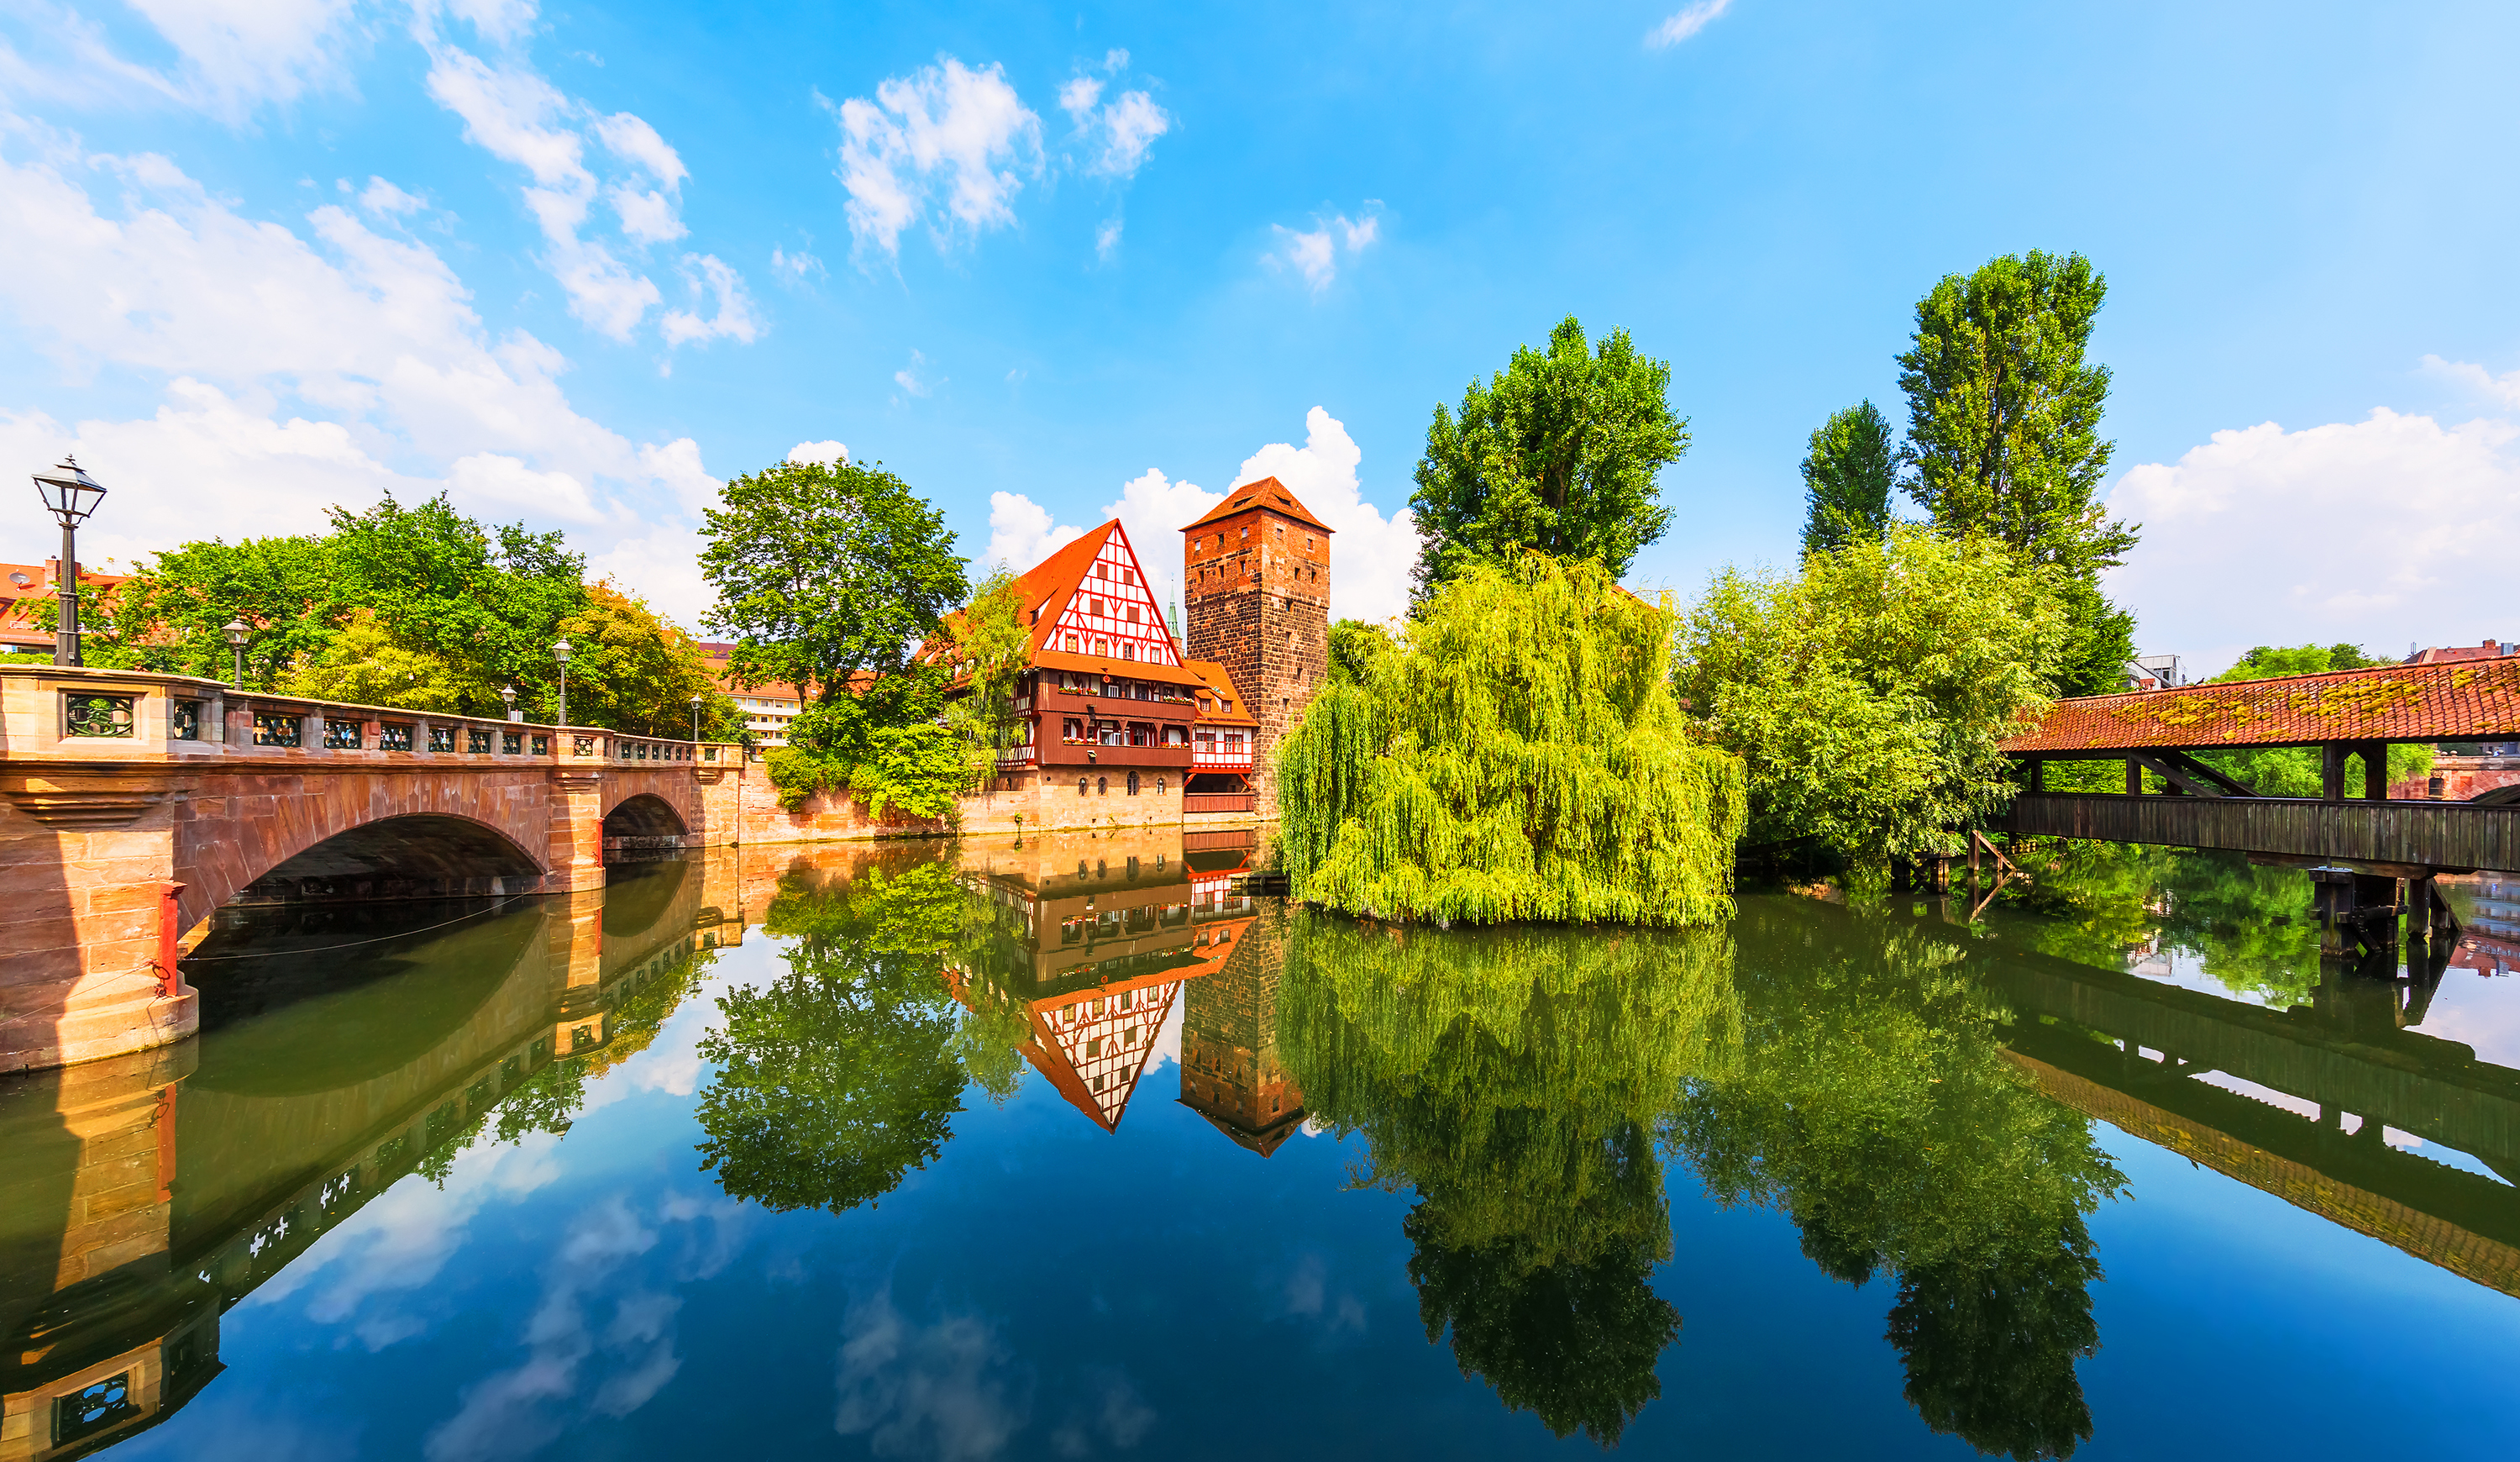 Headwater - Cycling Bavaria's Majestic Waterways, Self-guided